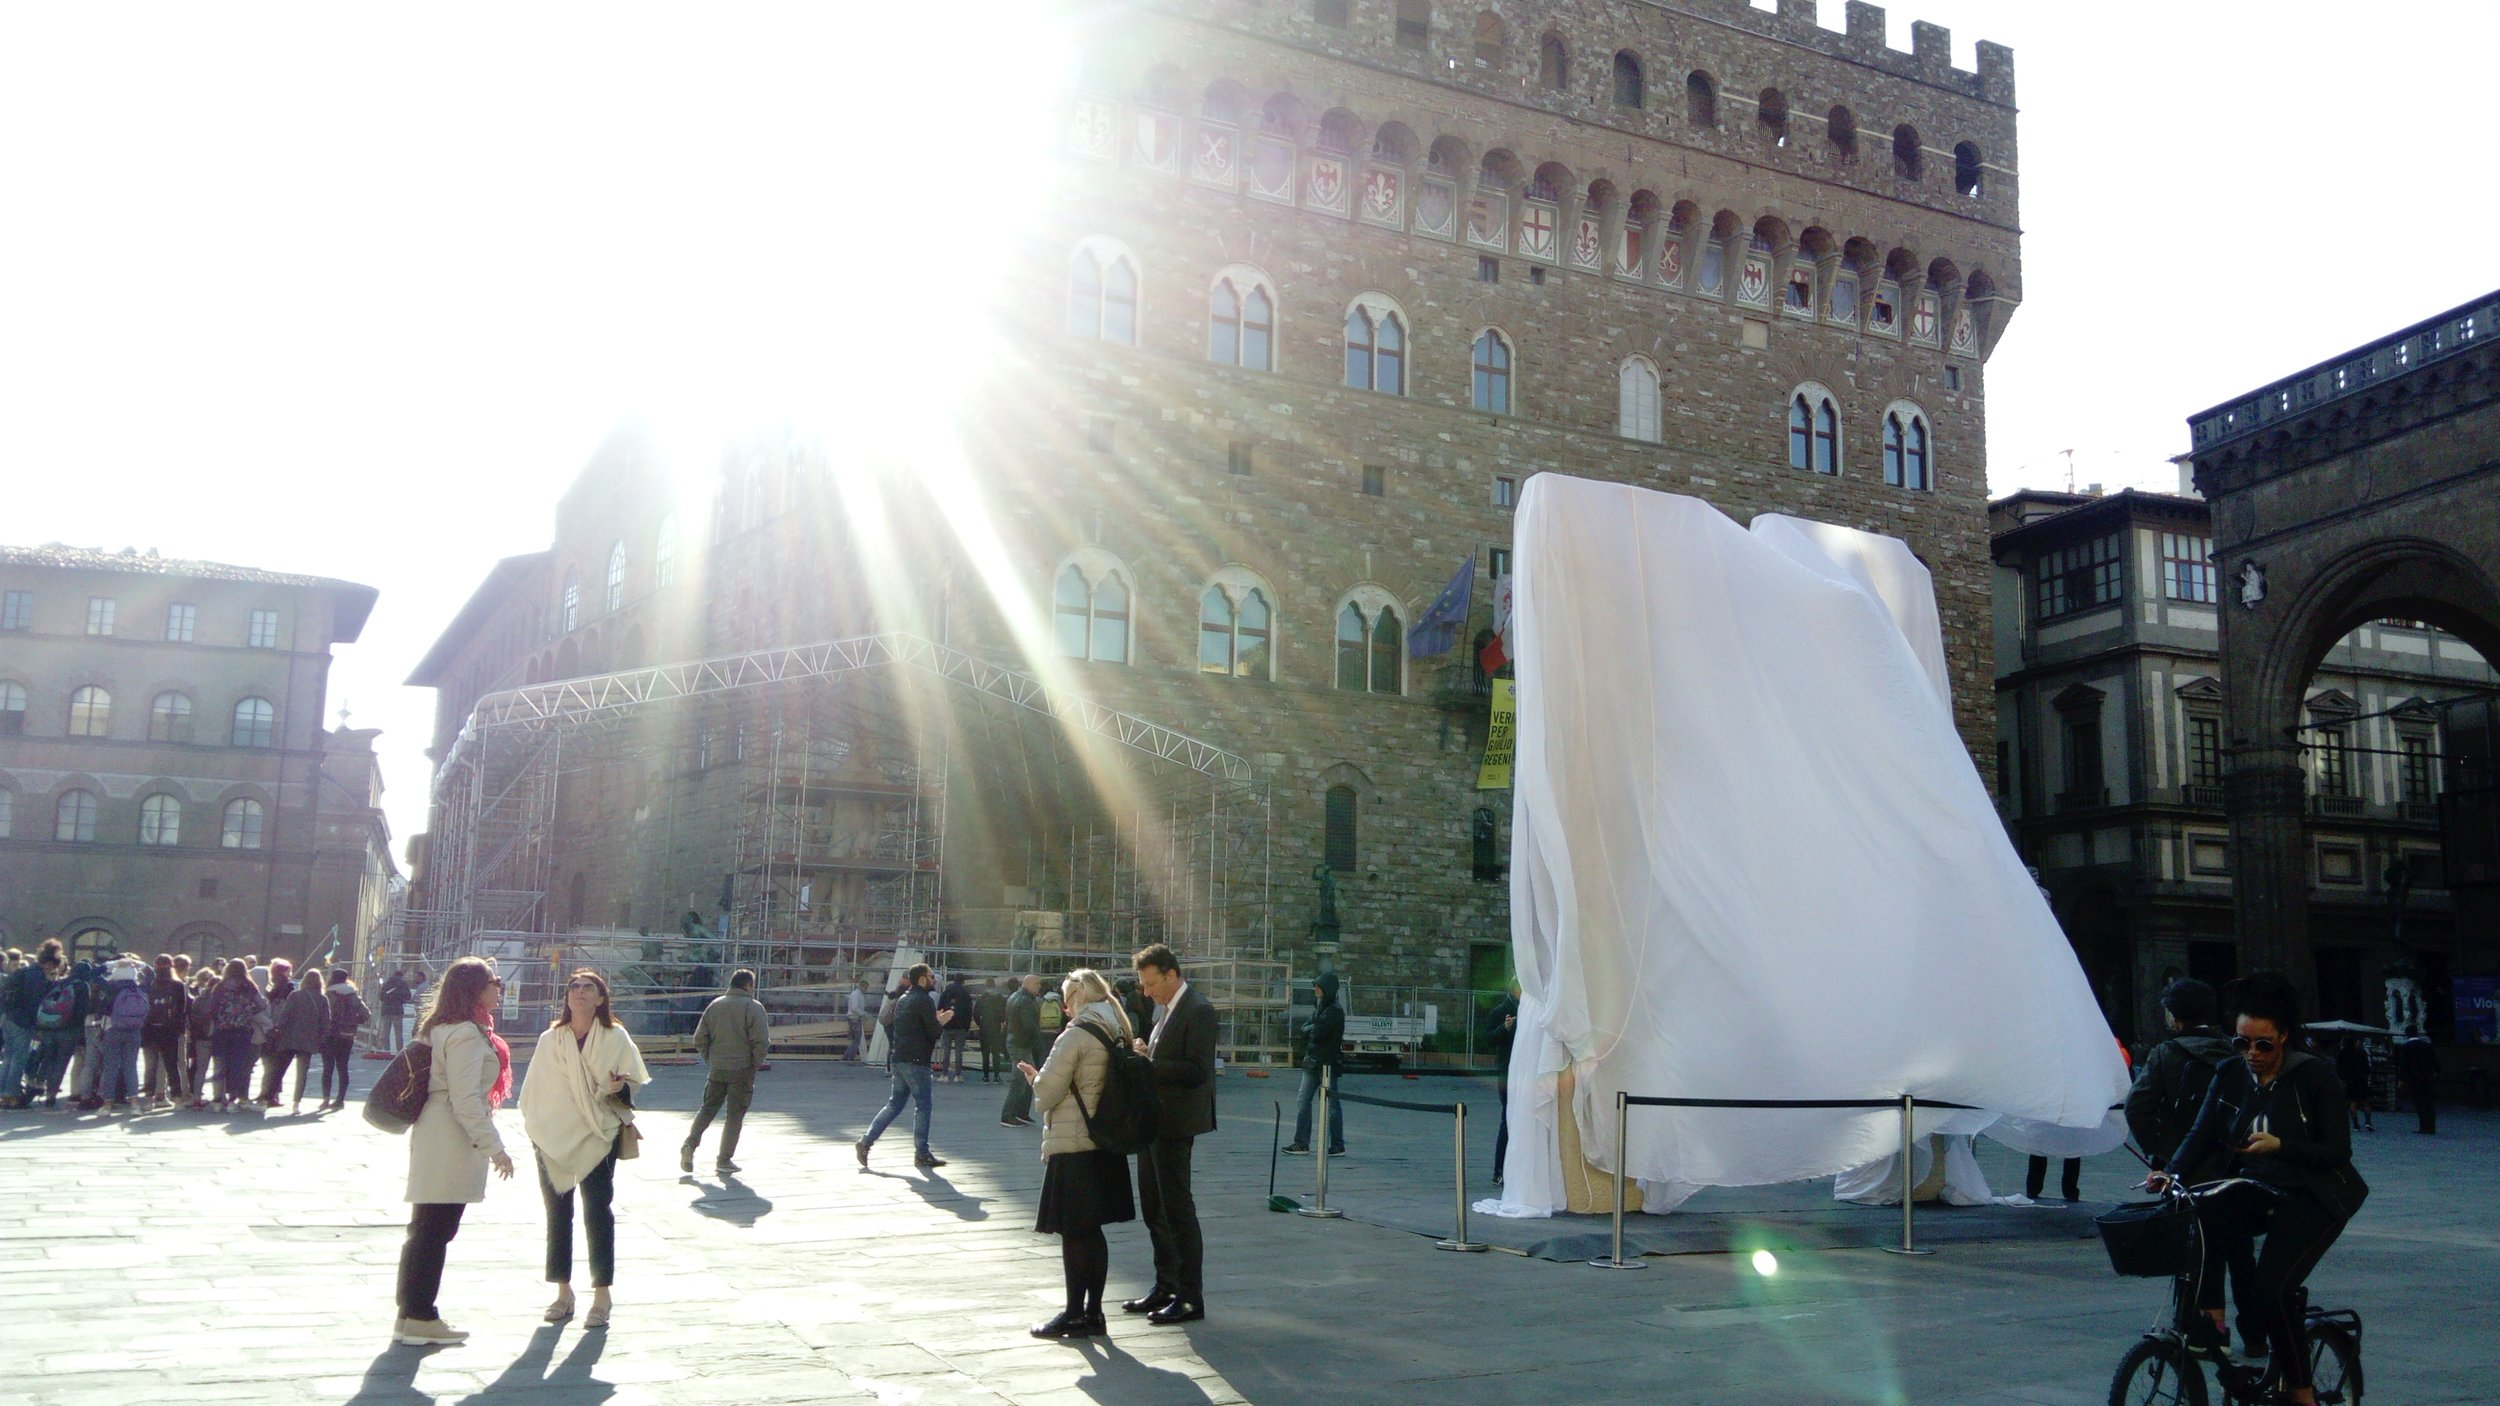 The Arch Before it is Unveiled in Piazza Della Signoria, Florence Italy (Erin Simmons)